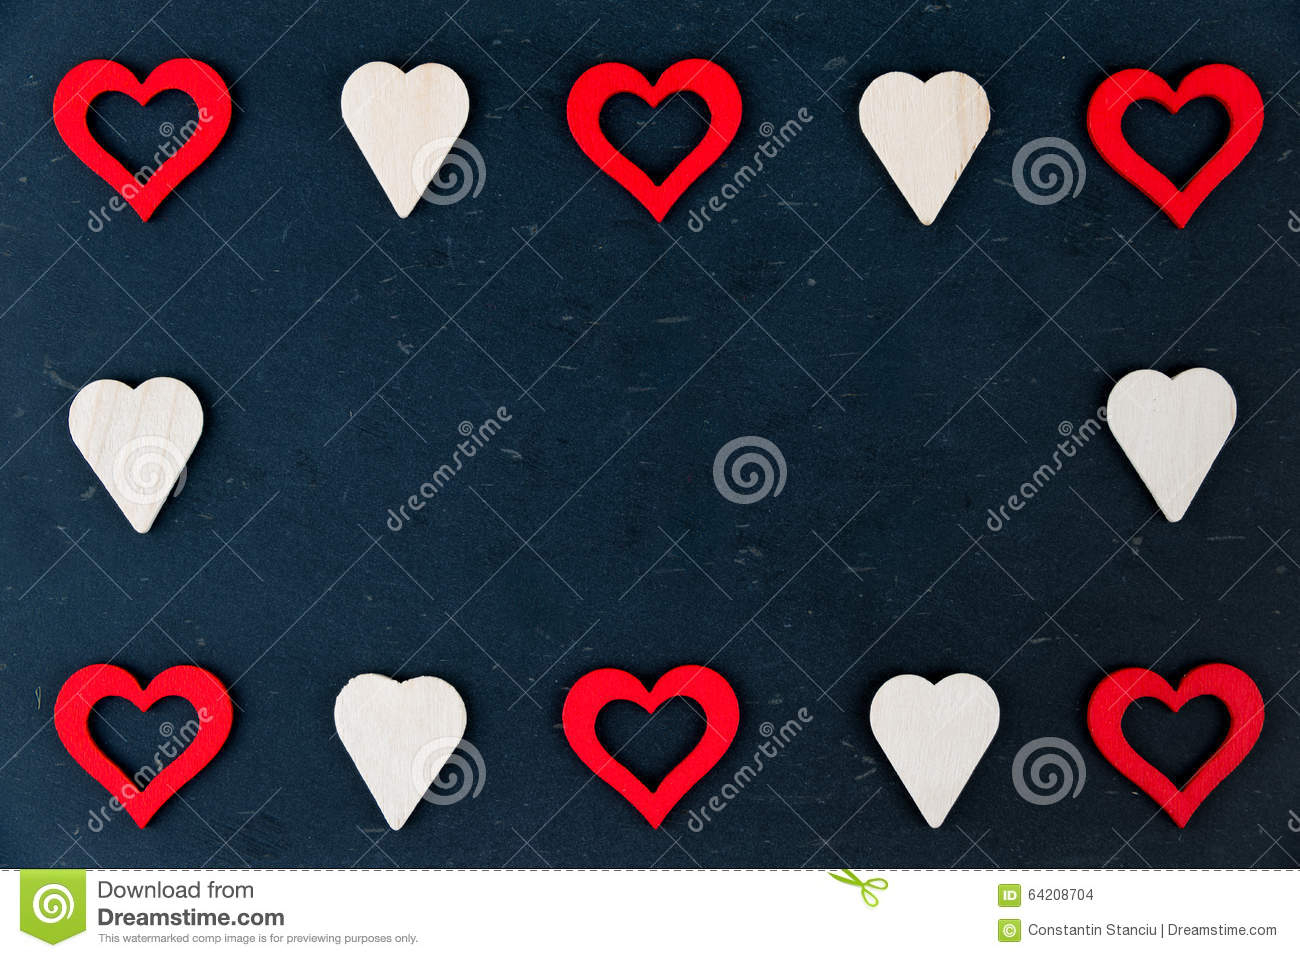 Heart Shapes Symbols Isolated On Black Available Copy Space Love